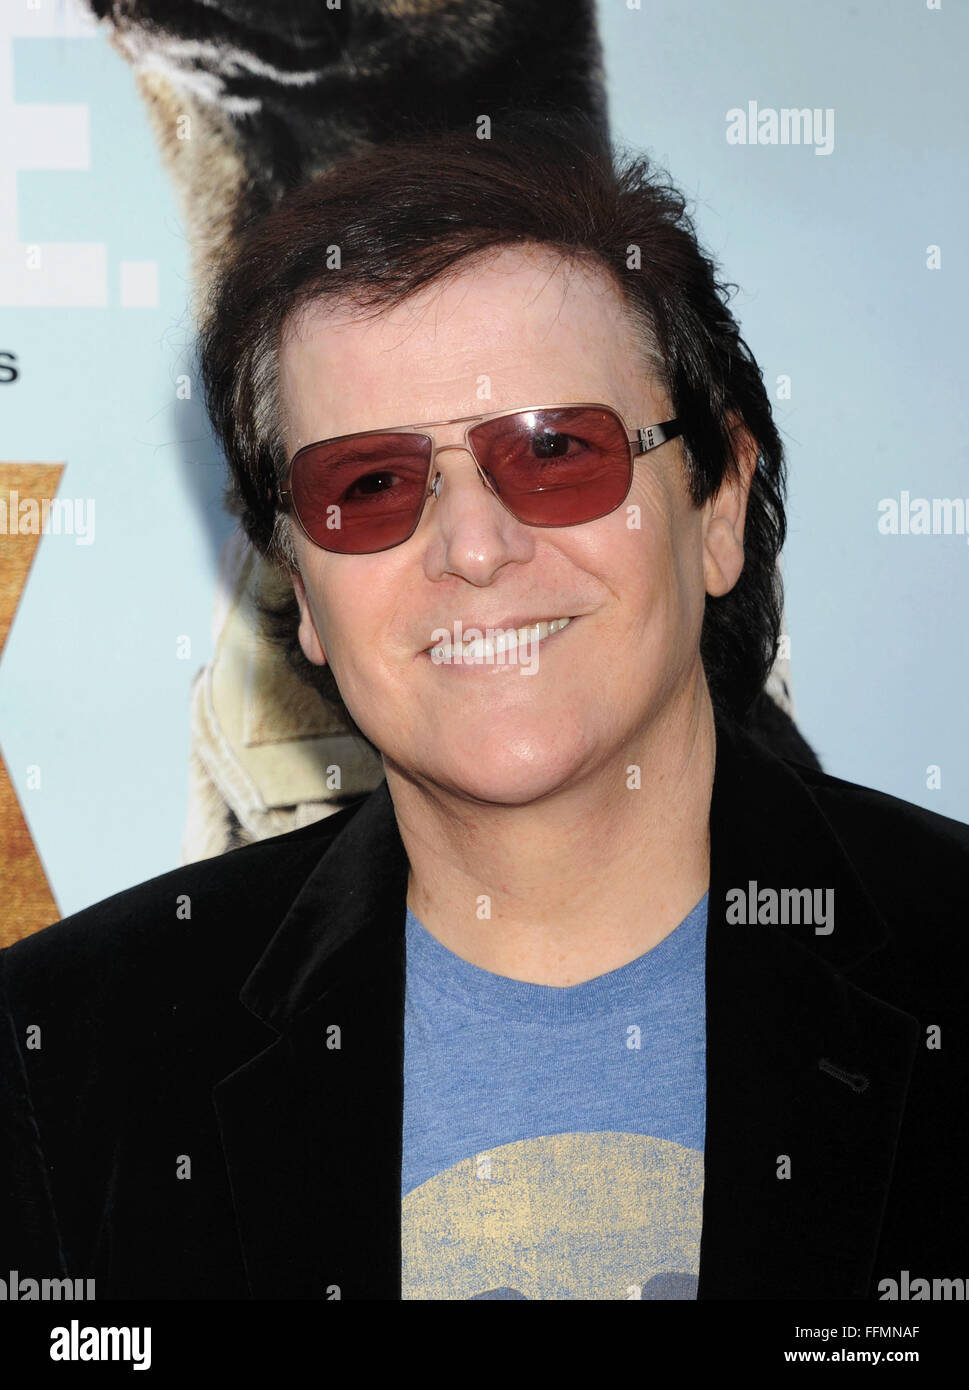 Composer/musician Trevor Rabin attends the Los Angeles premiere of 'MAX' at the Egyptian Theatre on June - Stock Image